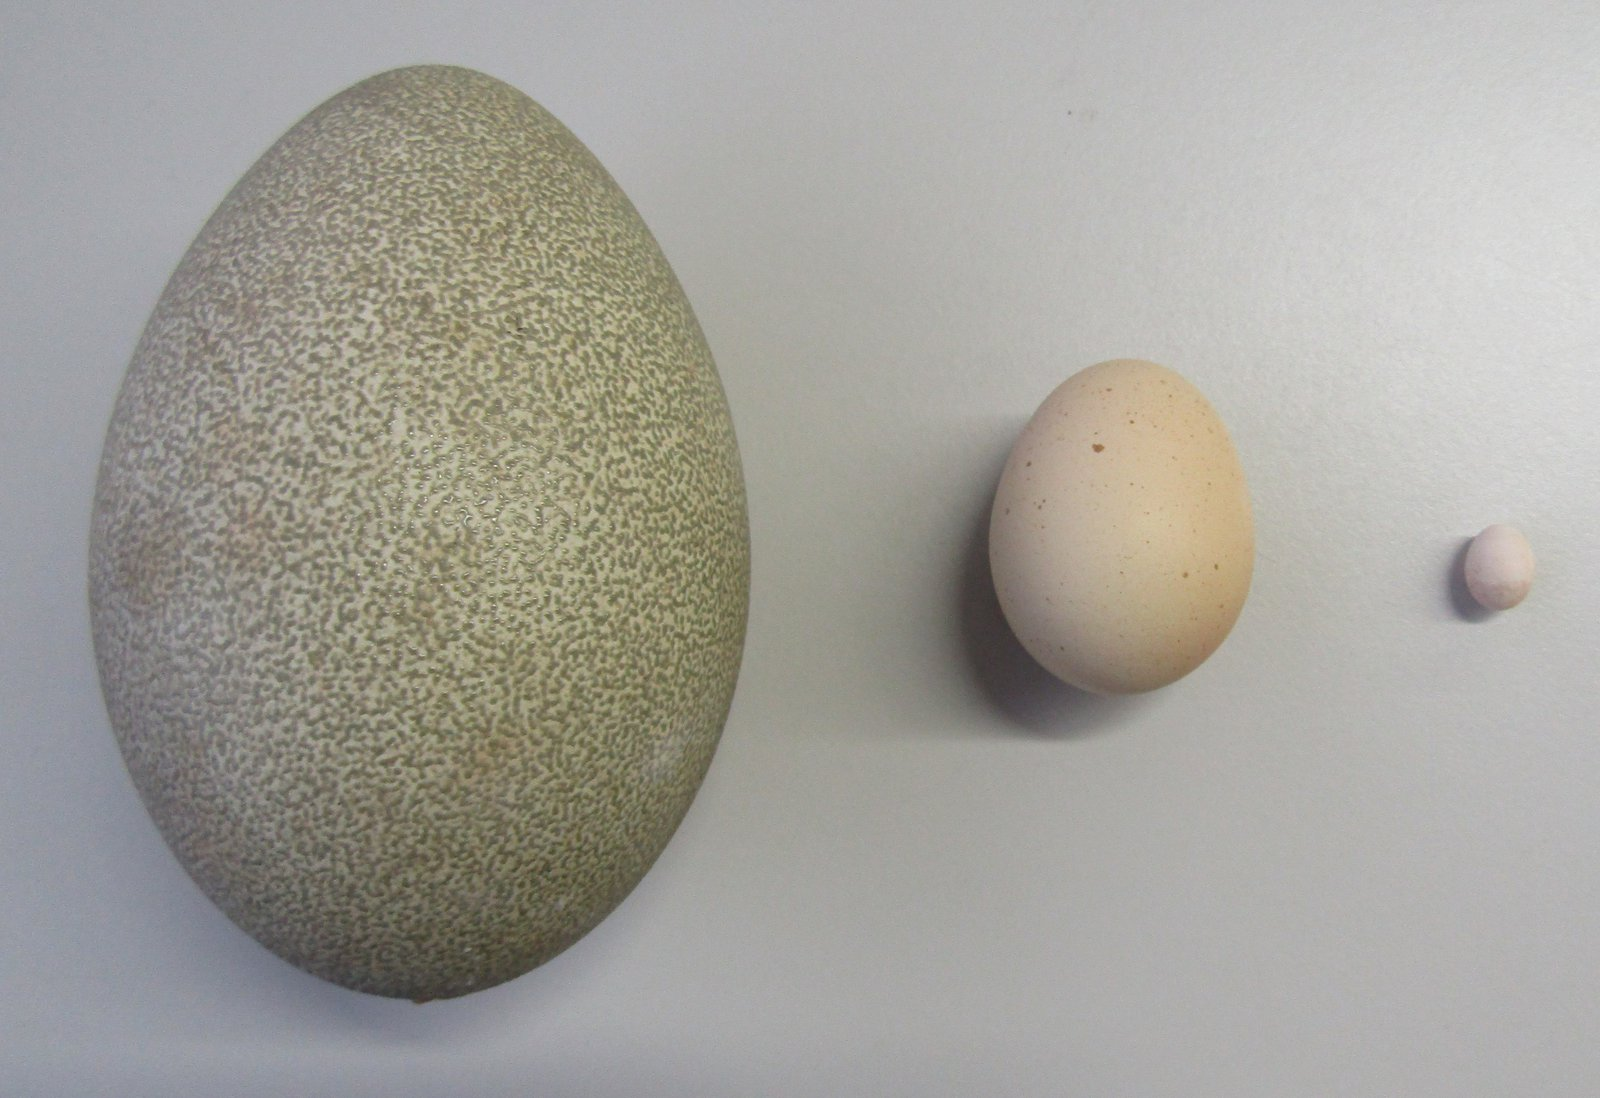 A huge range in egg size variation can be seen when comparing the Southern Cassowary egg (left), the Domestic Chicken (Gallus domesticus) (centre), and the Weebill (right).